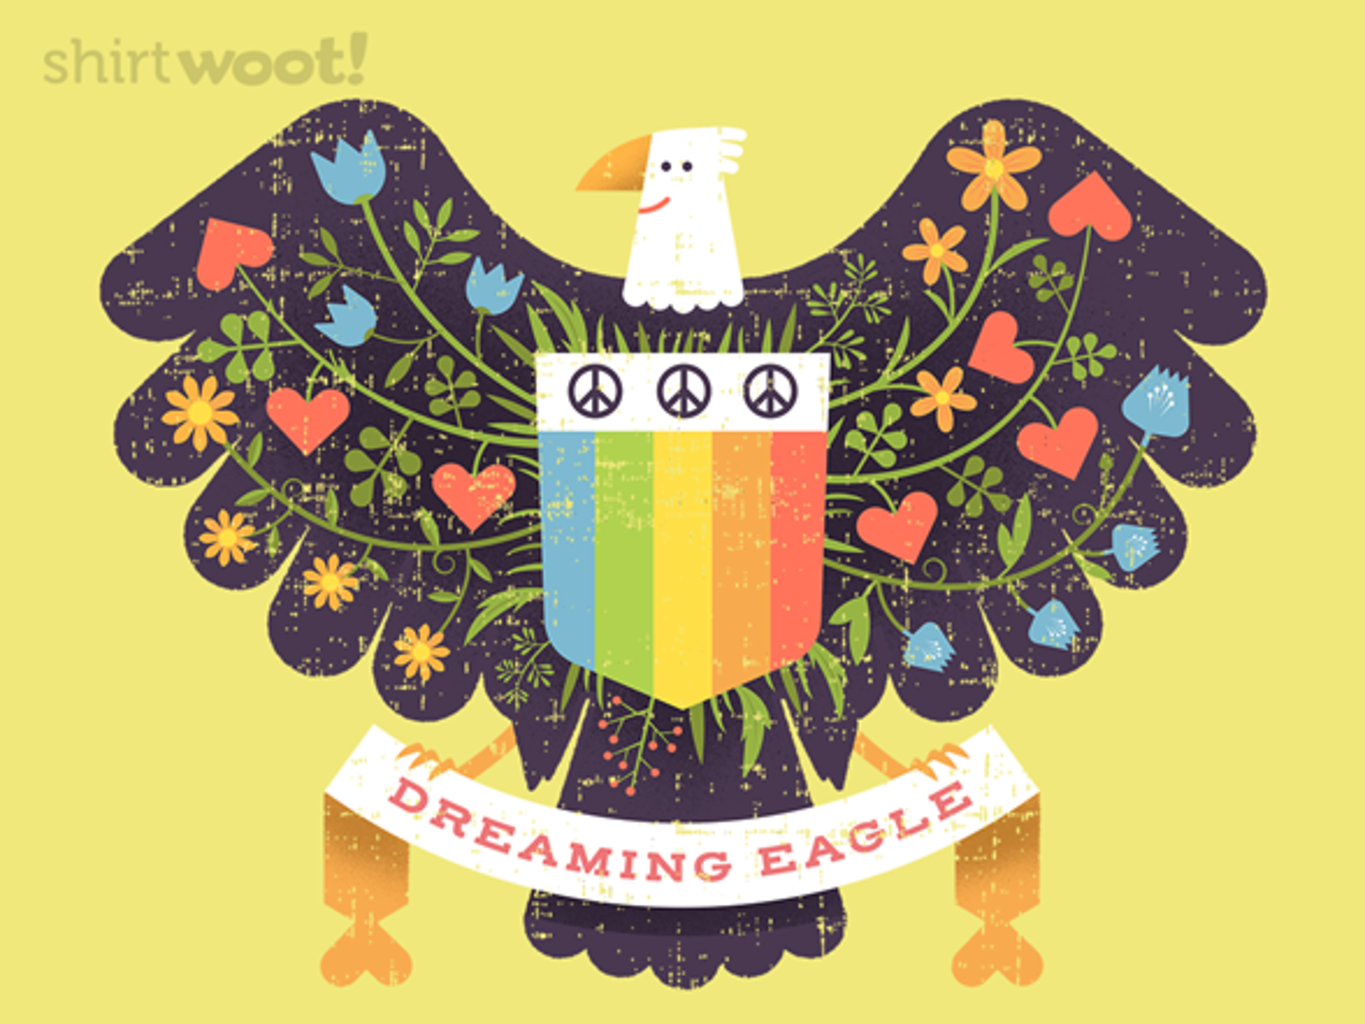 Woot!: Dreaming Eagle - $15.00 + Free shipping